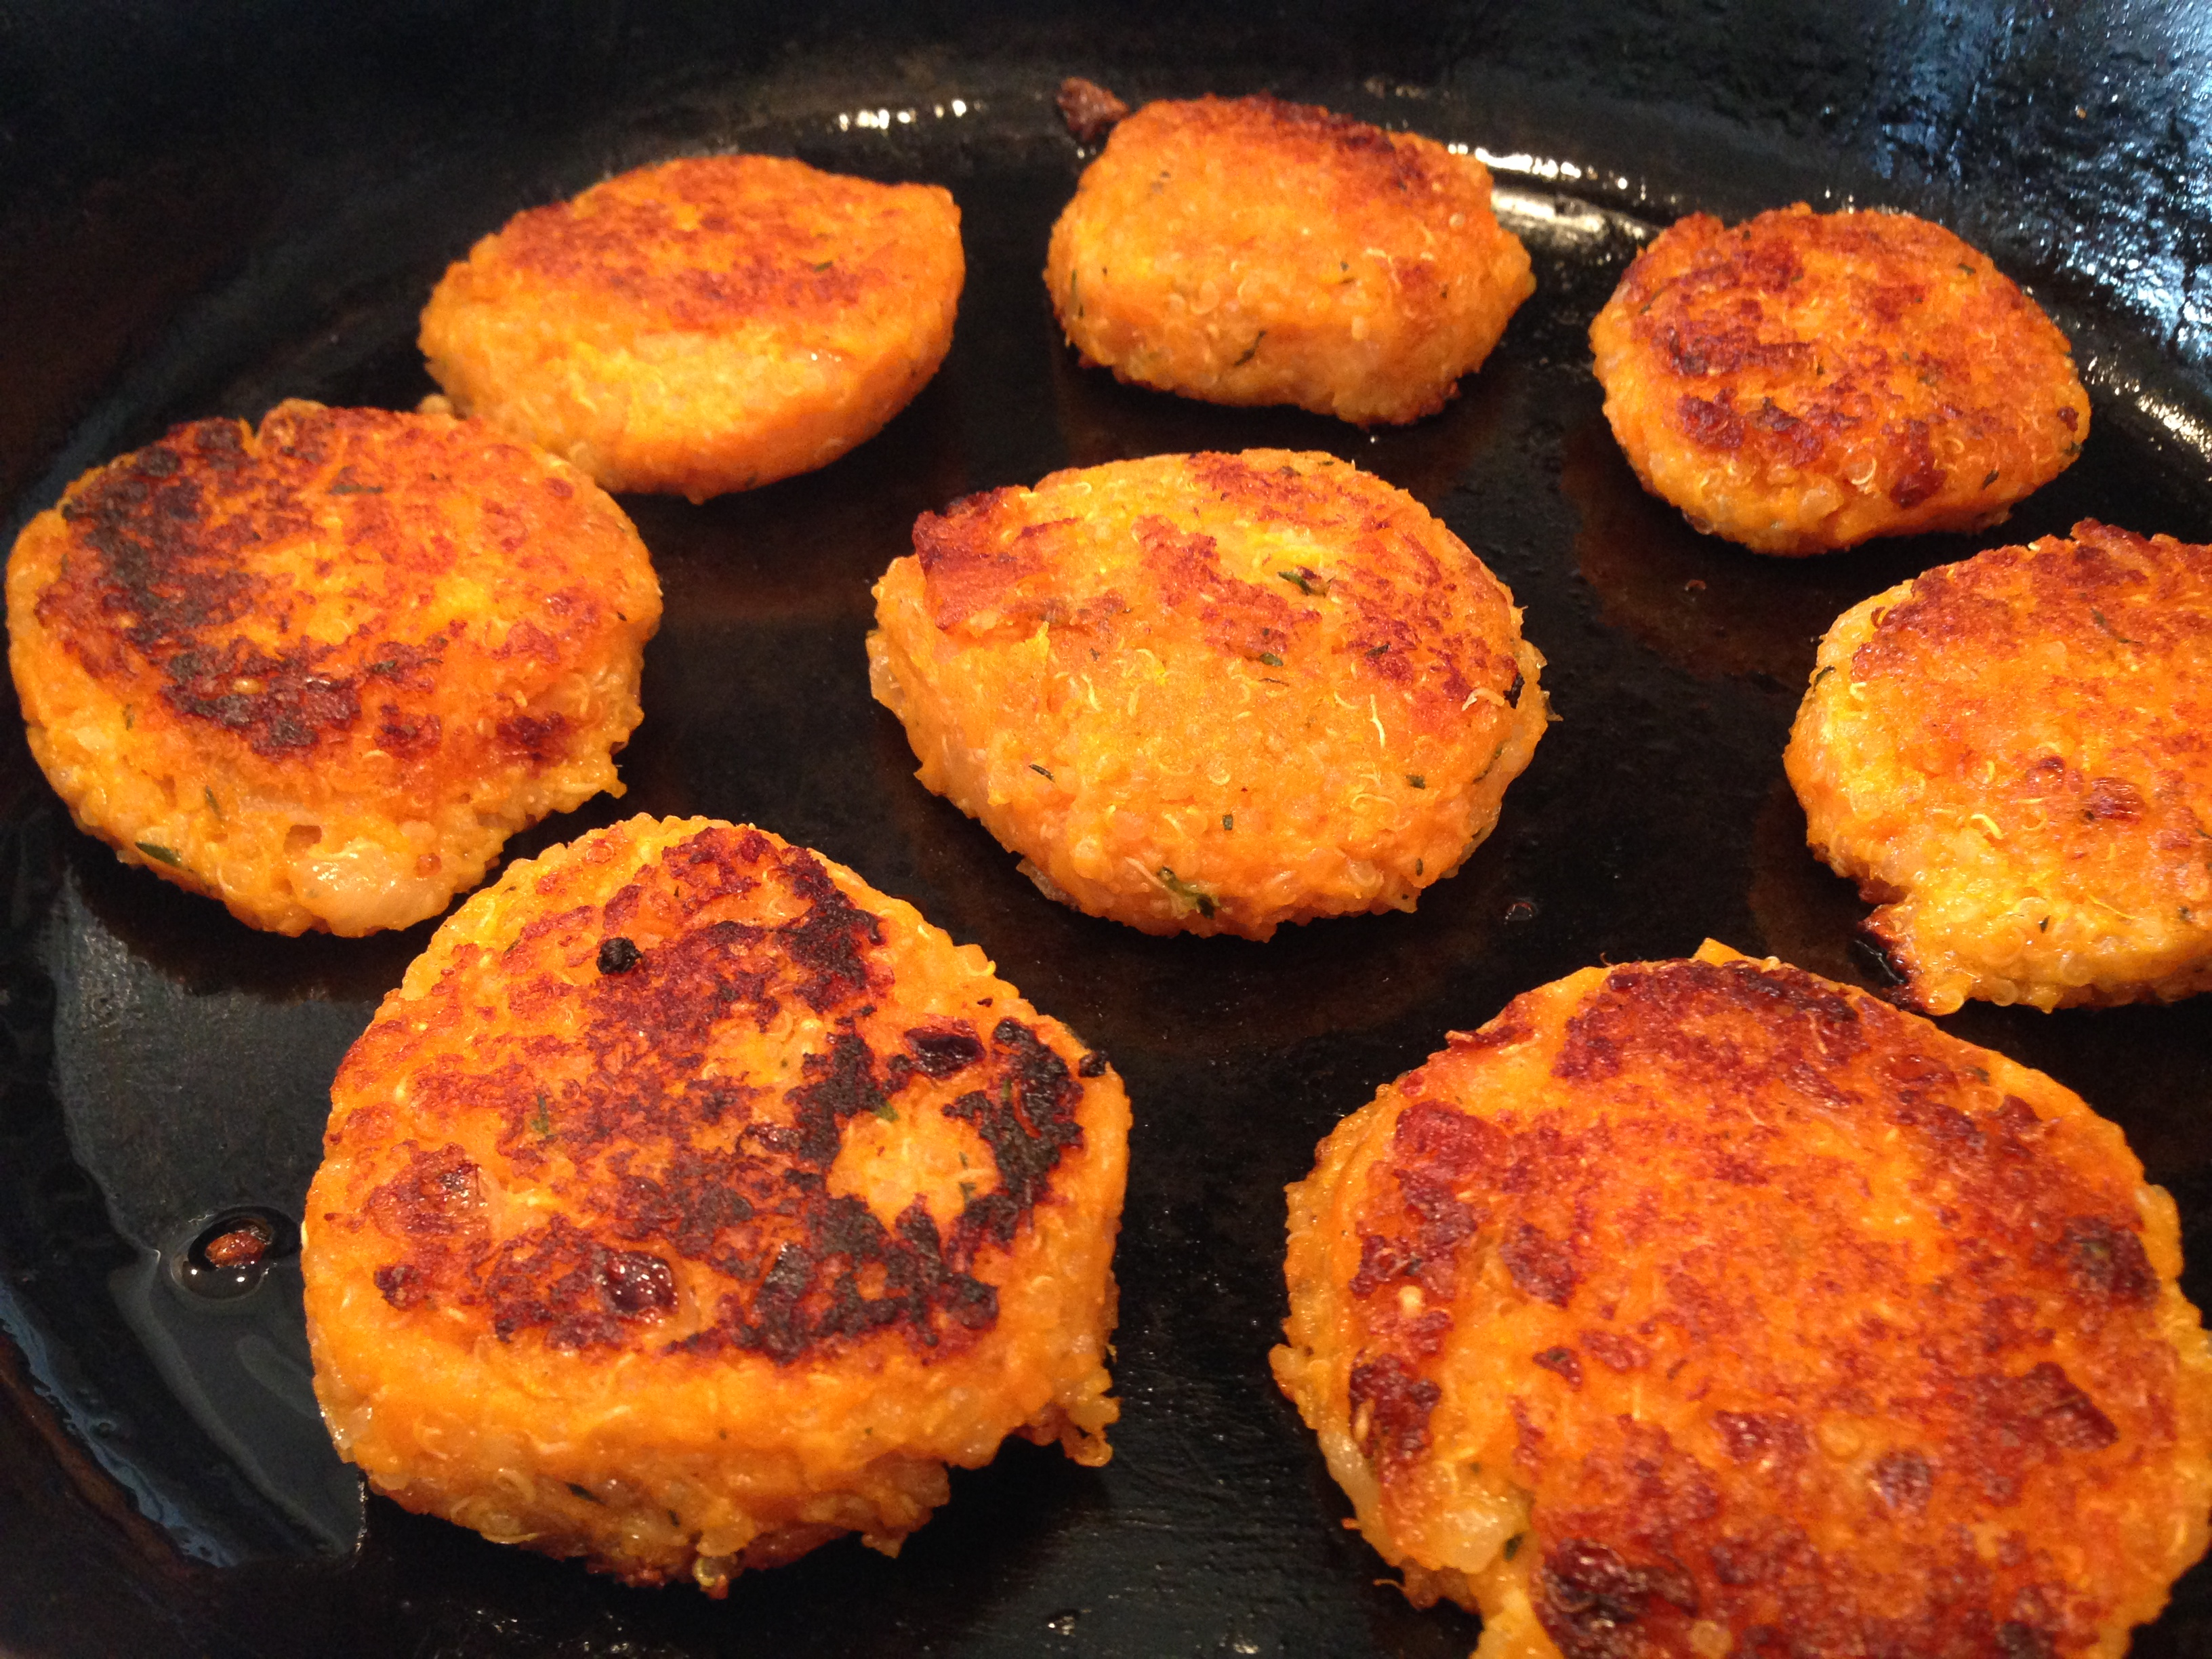 Sweet Potato Quinoa Patties with Savory Herb Drizzle